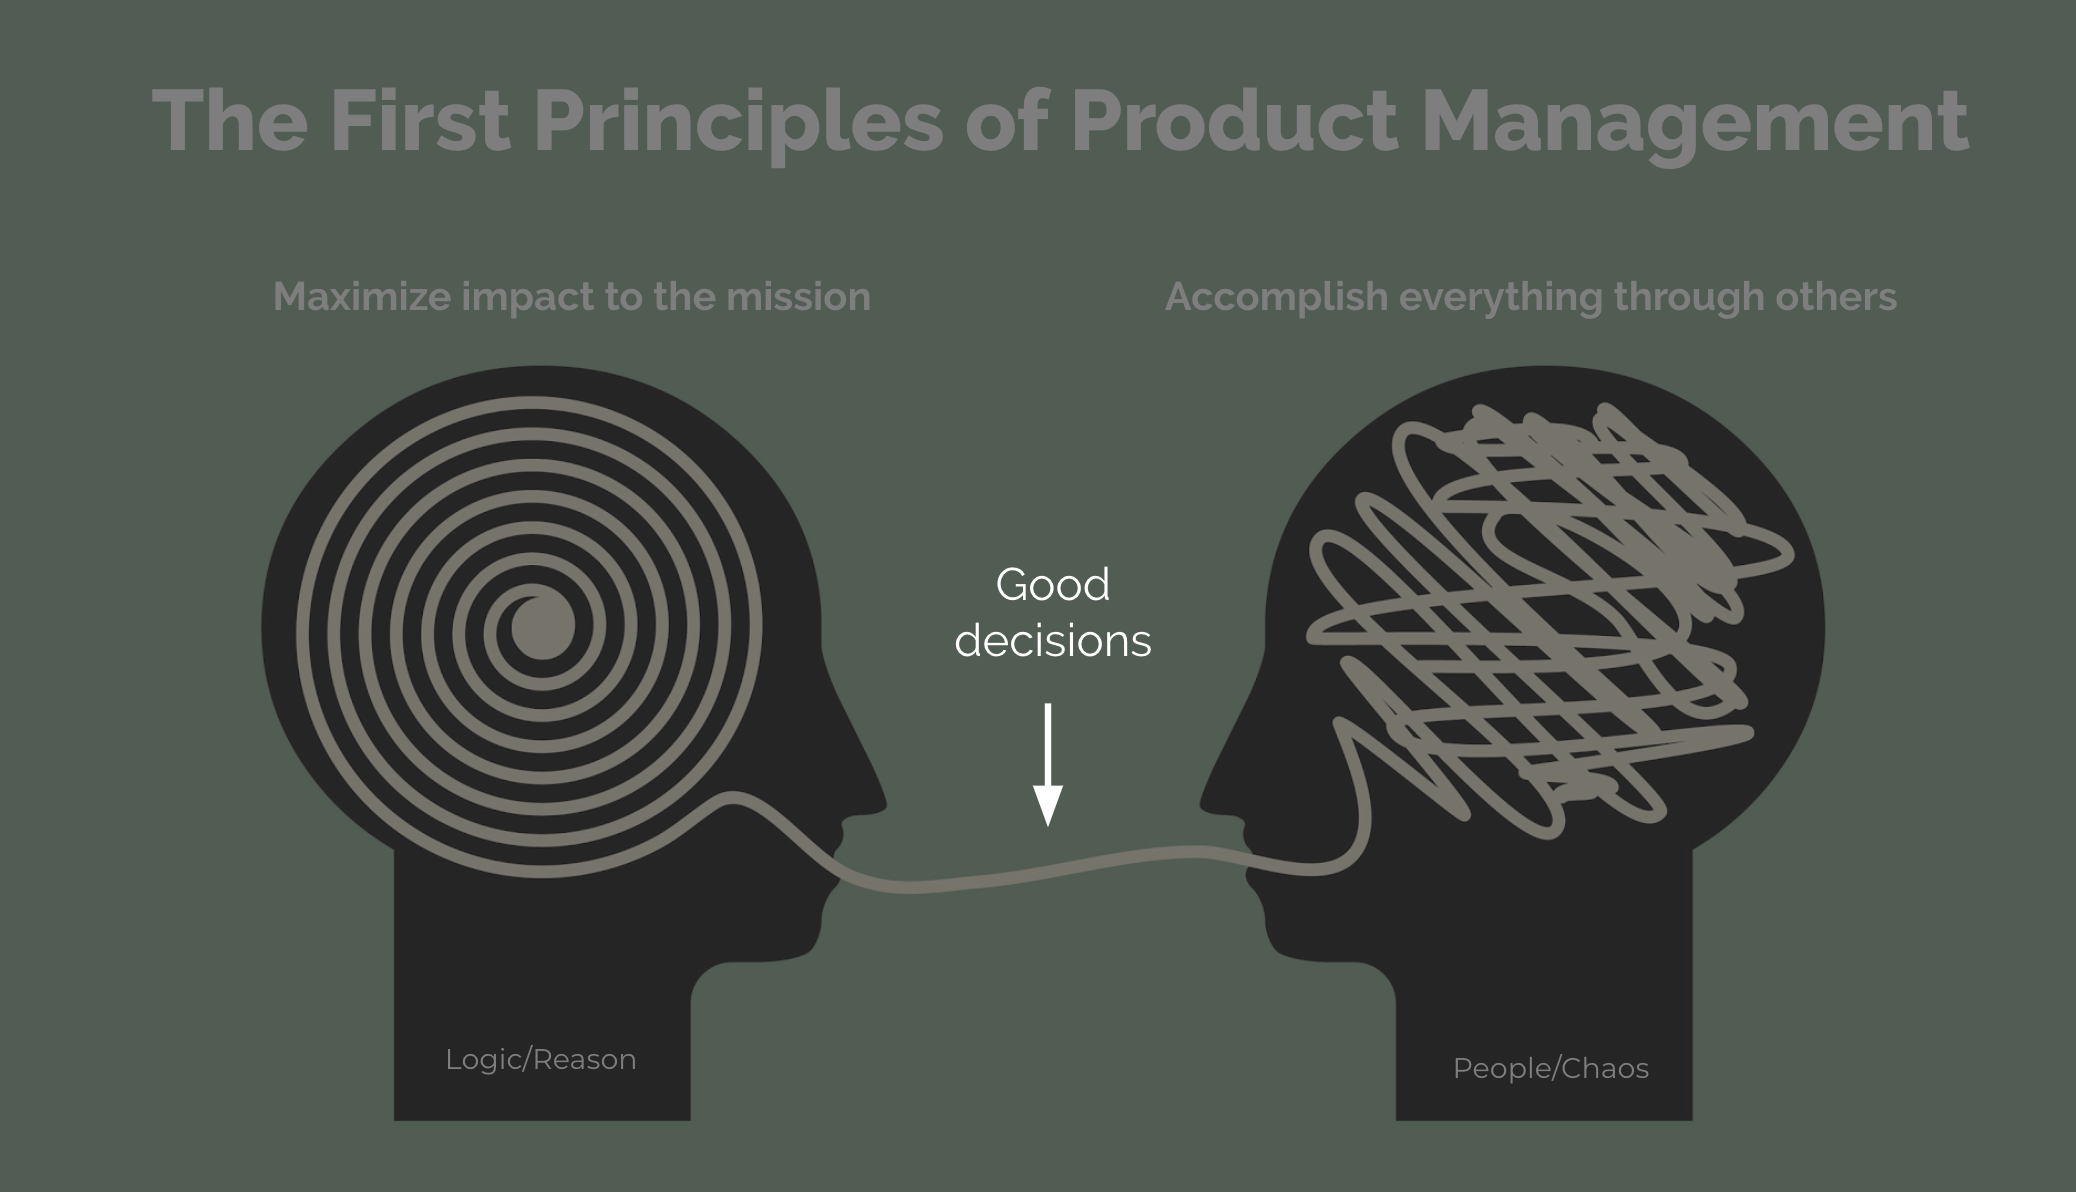 The First Principles of Product Management - The Black Box